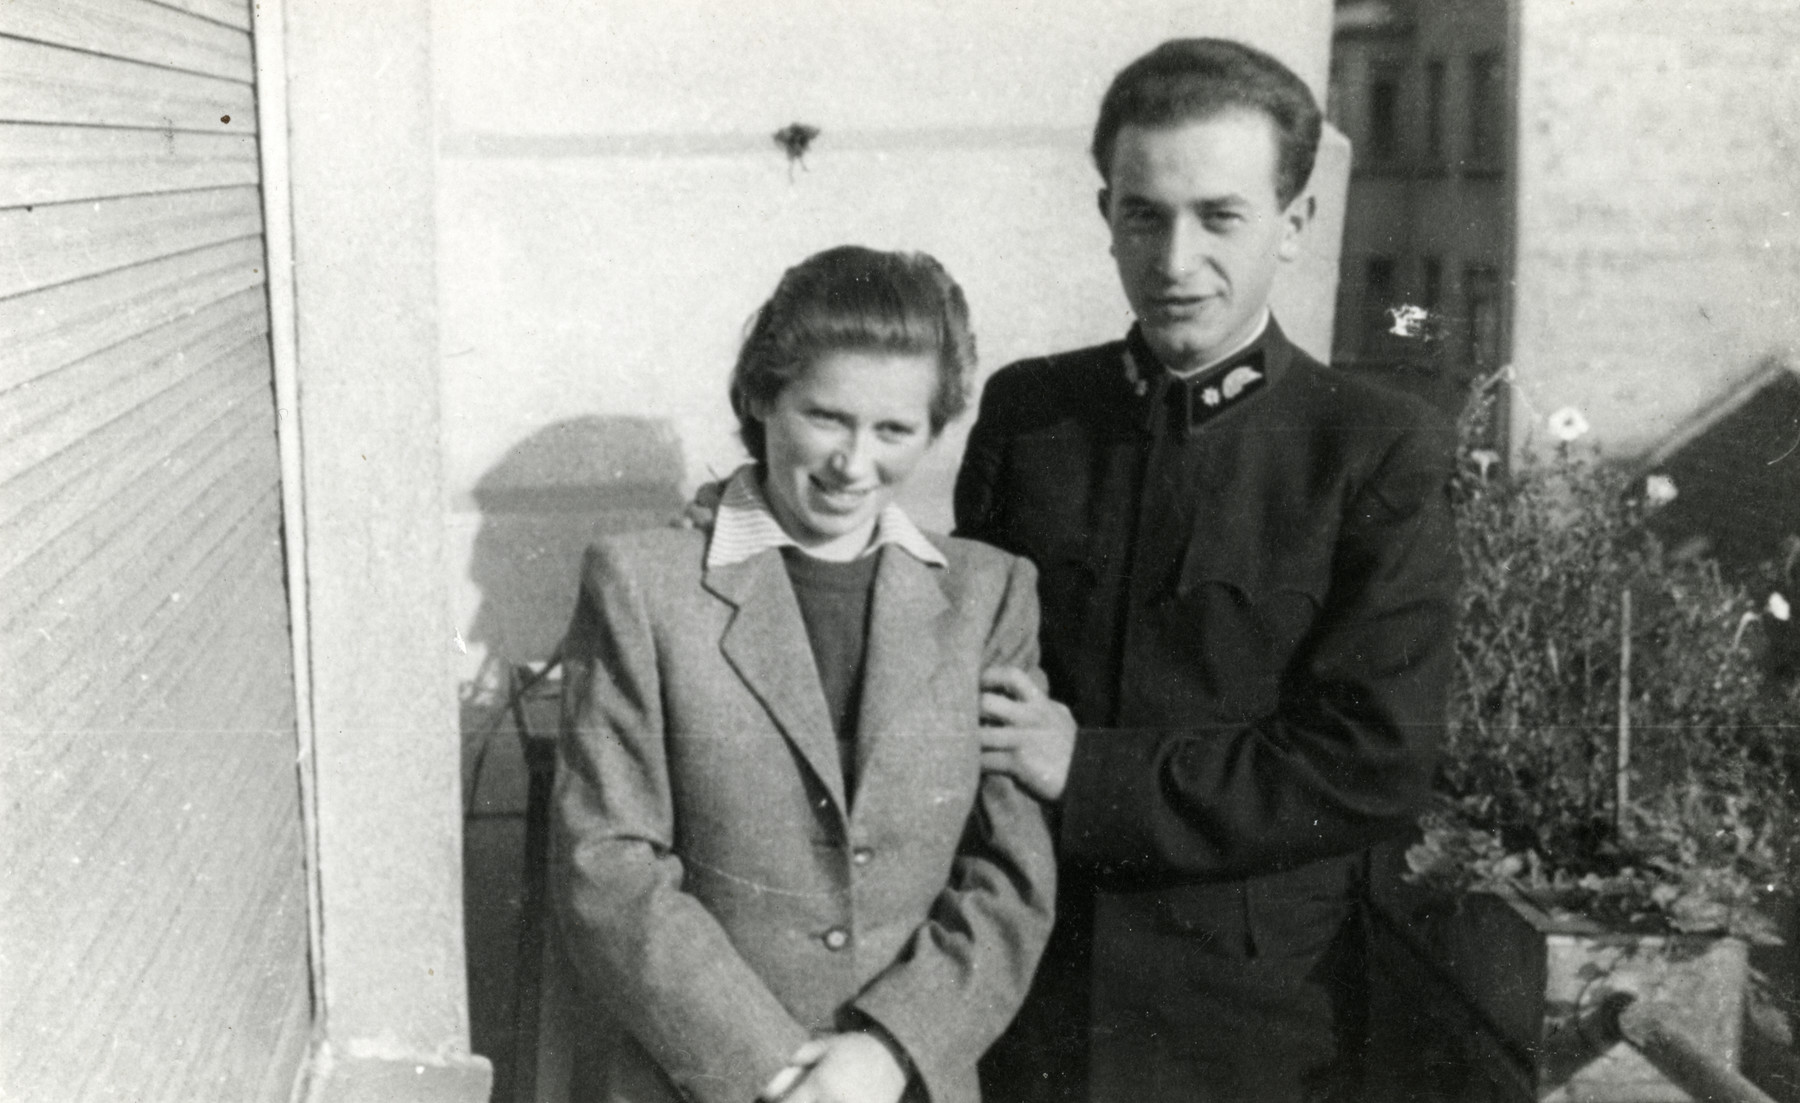 Portrait of Ephra Teichman and Tzippora Schaechter, two leaders of the Zionist resistance, rescue group in Hungary.  Ephraim Teichman is wearing the uniform of a train engineer (his wartime alias).  The photograph was taken either shortly before or shortly after the two wed.